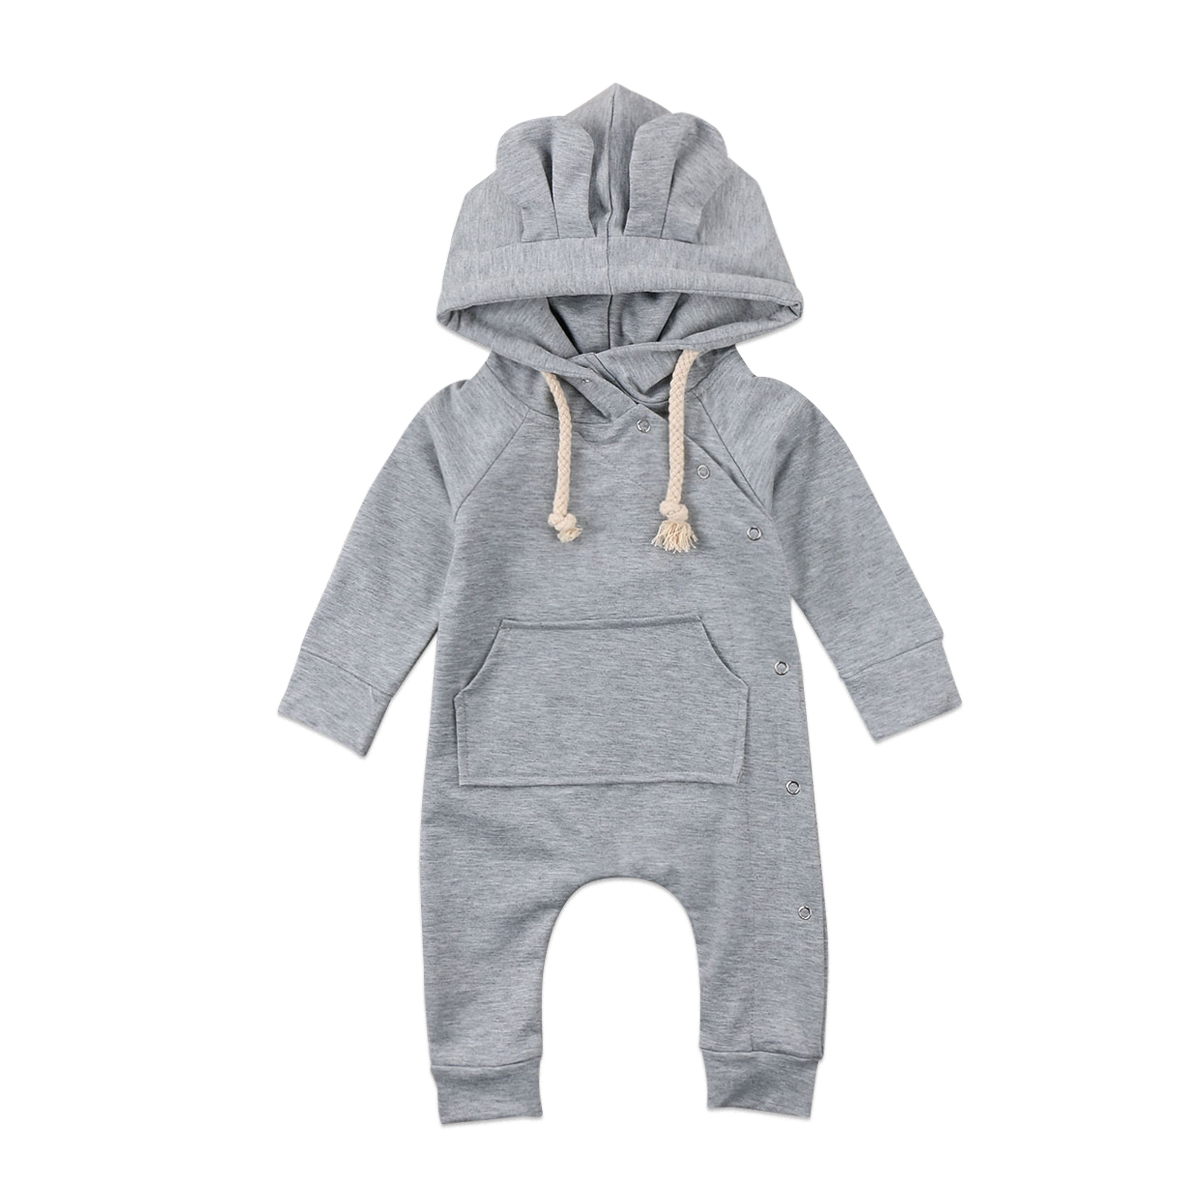 2018 New Year Baby Boy Girl Infant 3D Ear Hooded Long Sleeve Romper Solid Jumpsuit Cotton Clothes Outfits